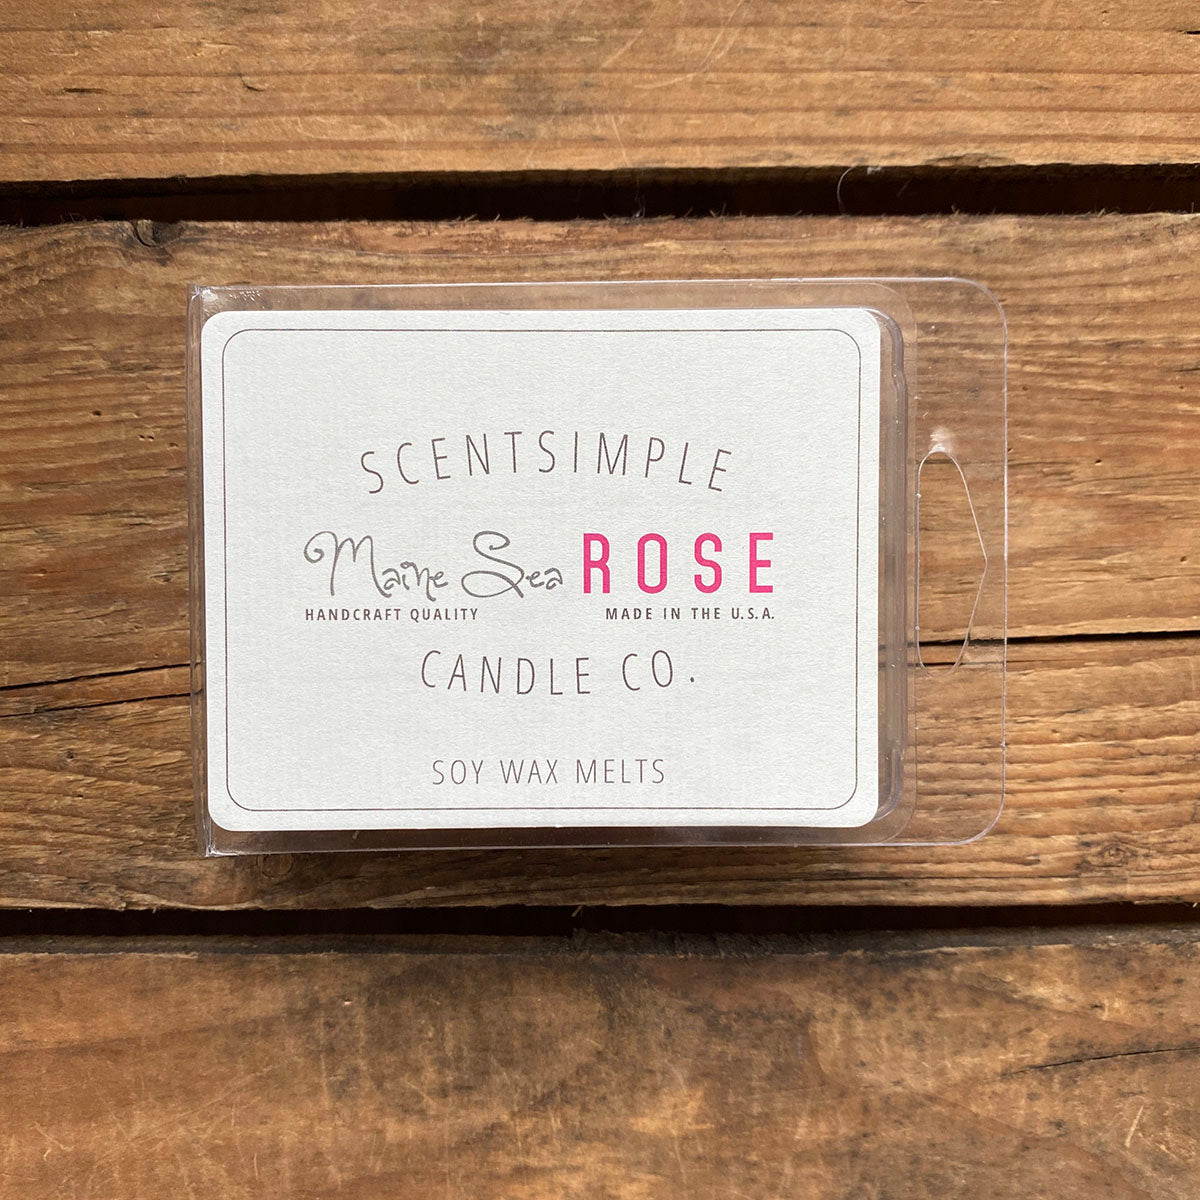 Maine Sea Rose Scented Soy Wax Melts